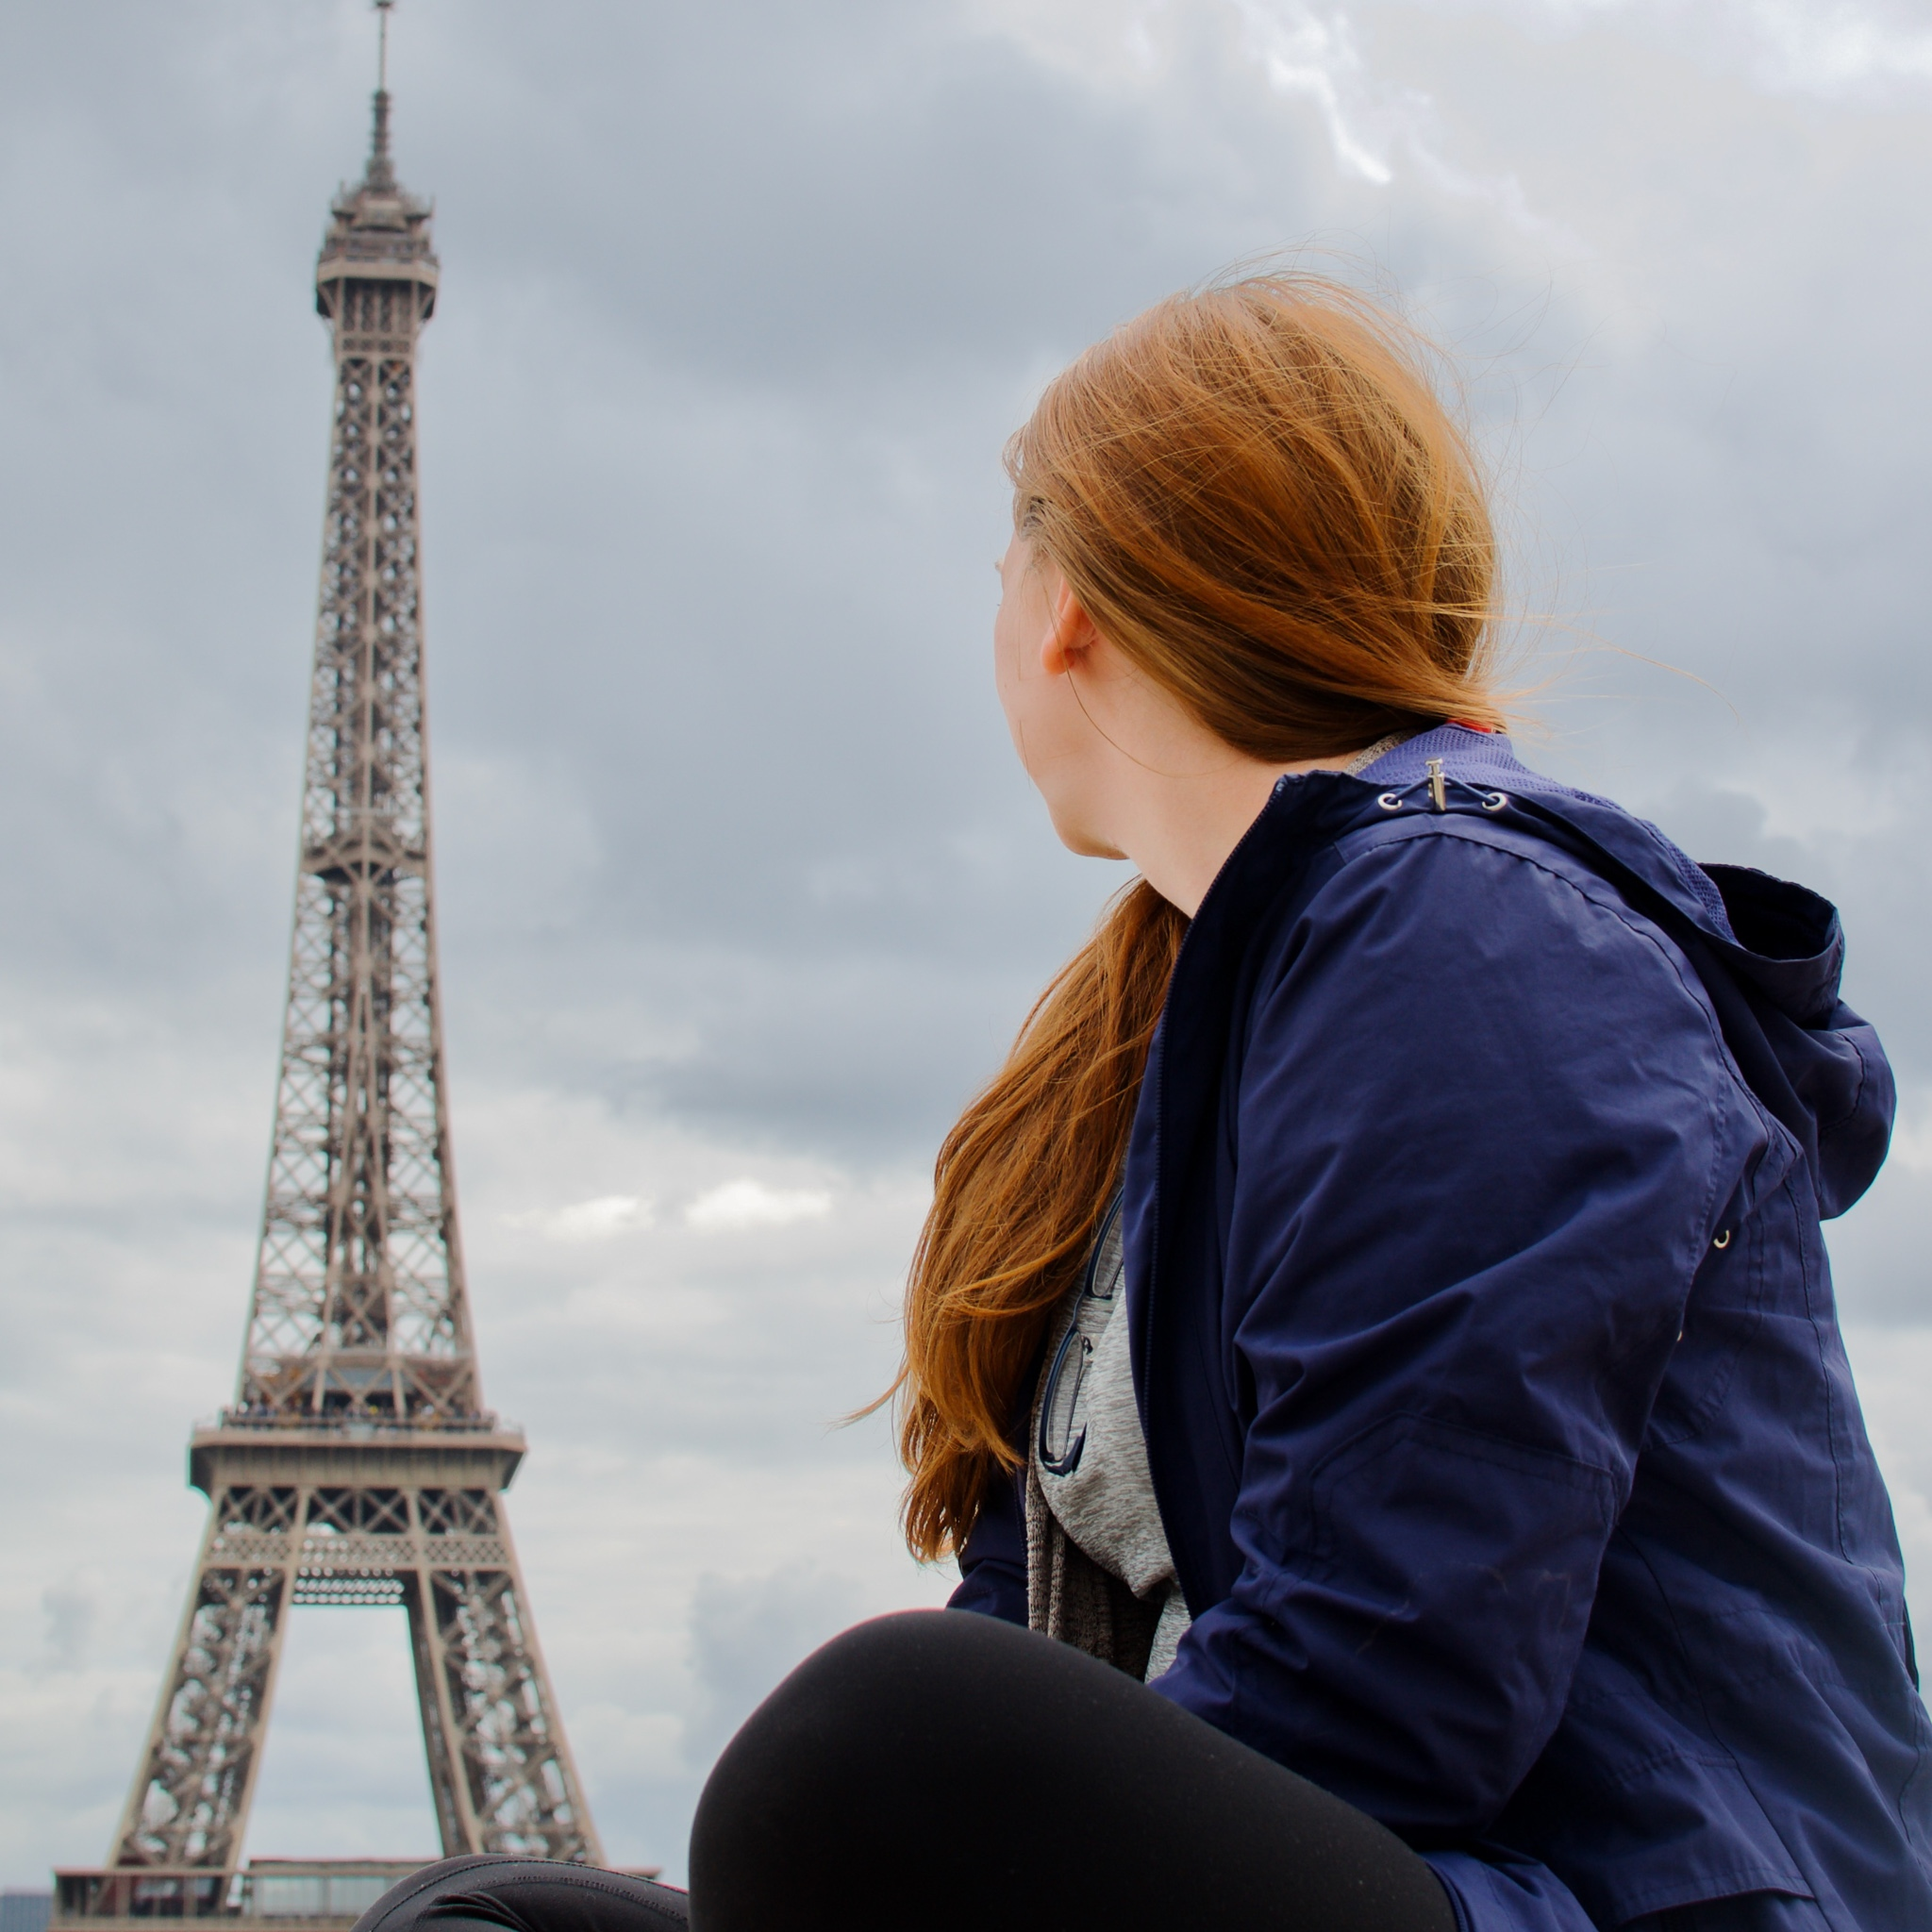 Woman in purple coat with red hair, looking towards the Eiffel Tower on a cloudy day